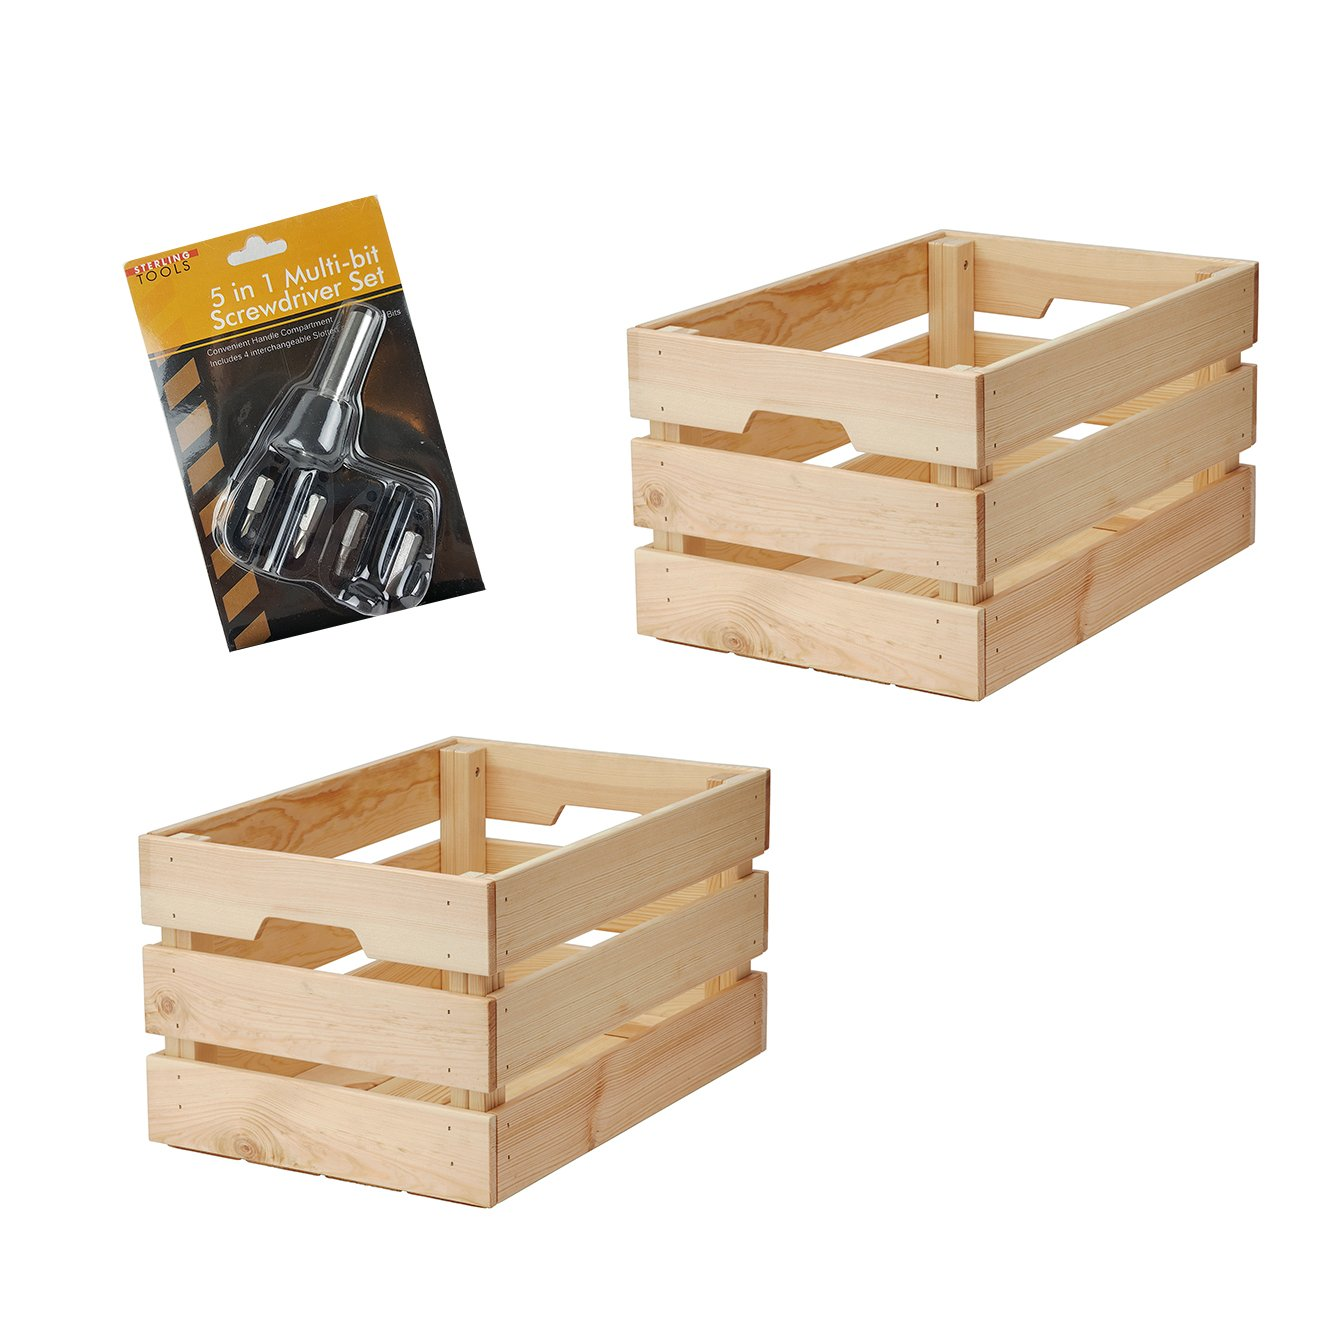 IKEA Knagglig Vintage Unfinished Wood Crate Basket Bundle | Box for Home or Office Storage And Organization with Handles [Large Box] (Set of 2 Boxes with 5 in 1 Screwdriver)